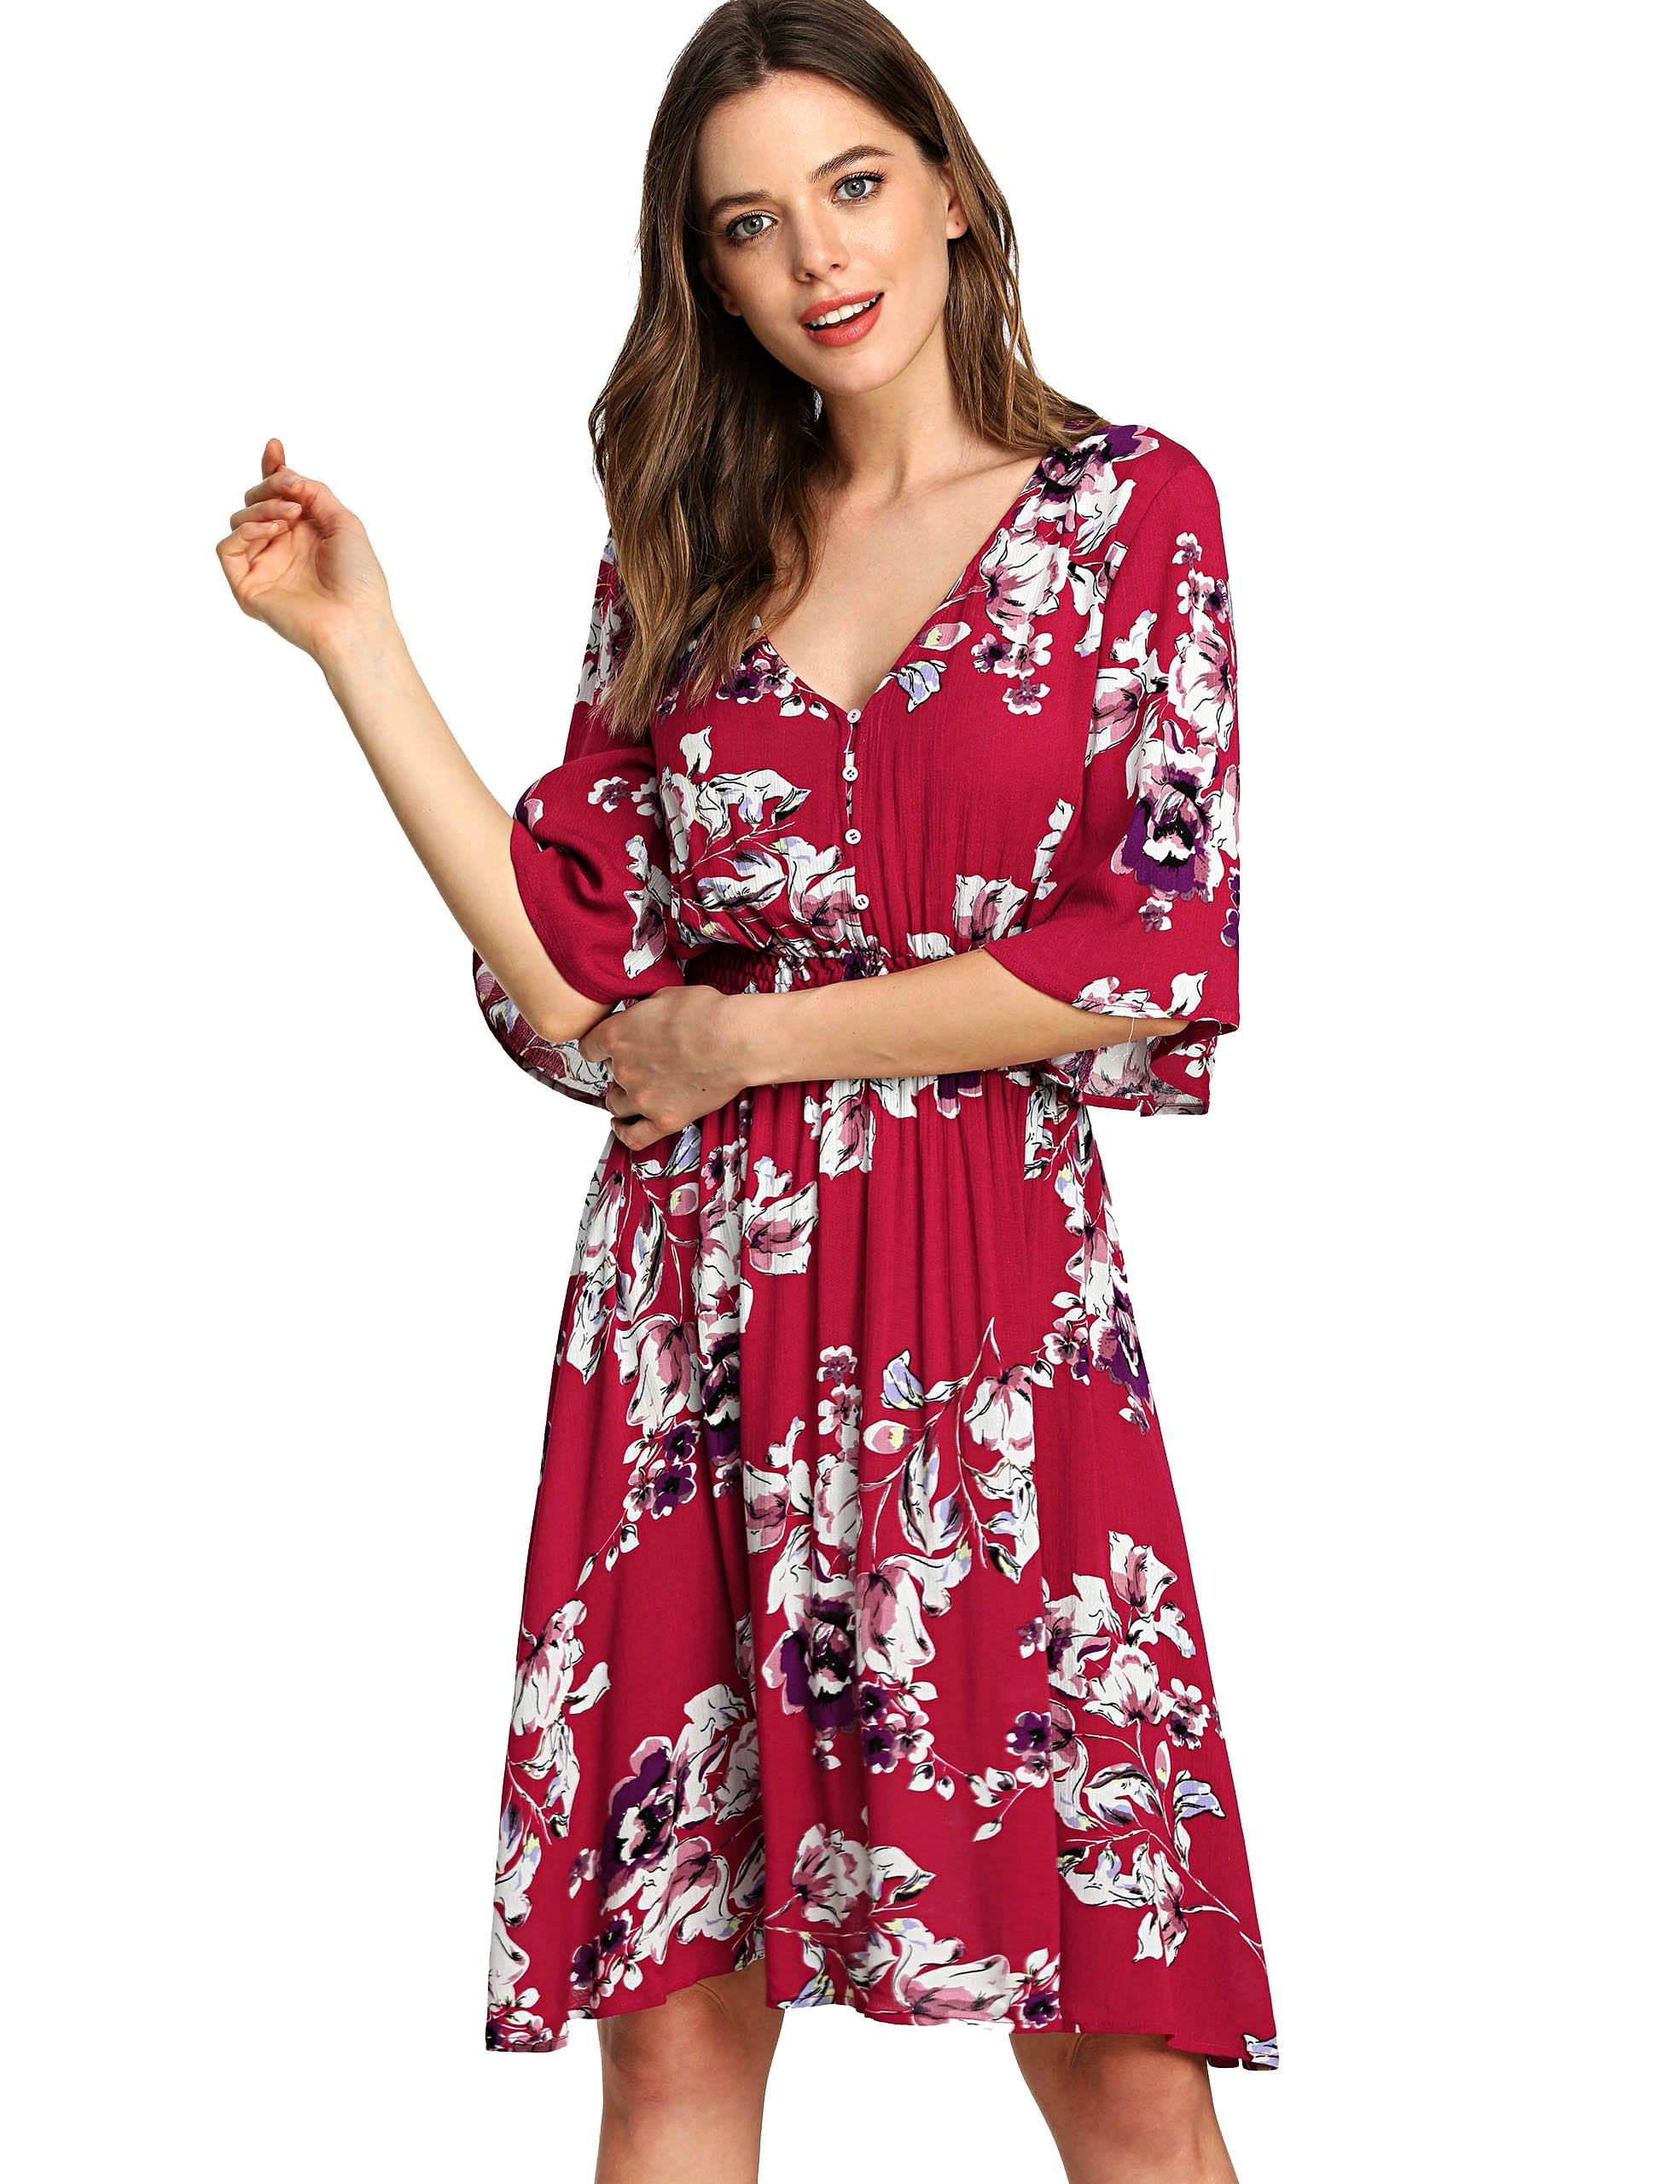 Milumia Women's Boho Button up Split Floral Print Flowy Party Dress X-Small Multicolor-Red